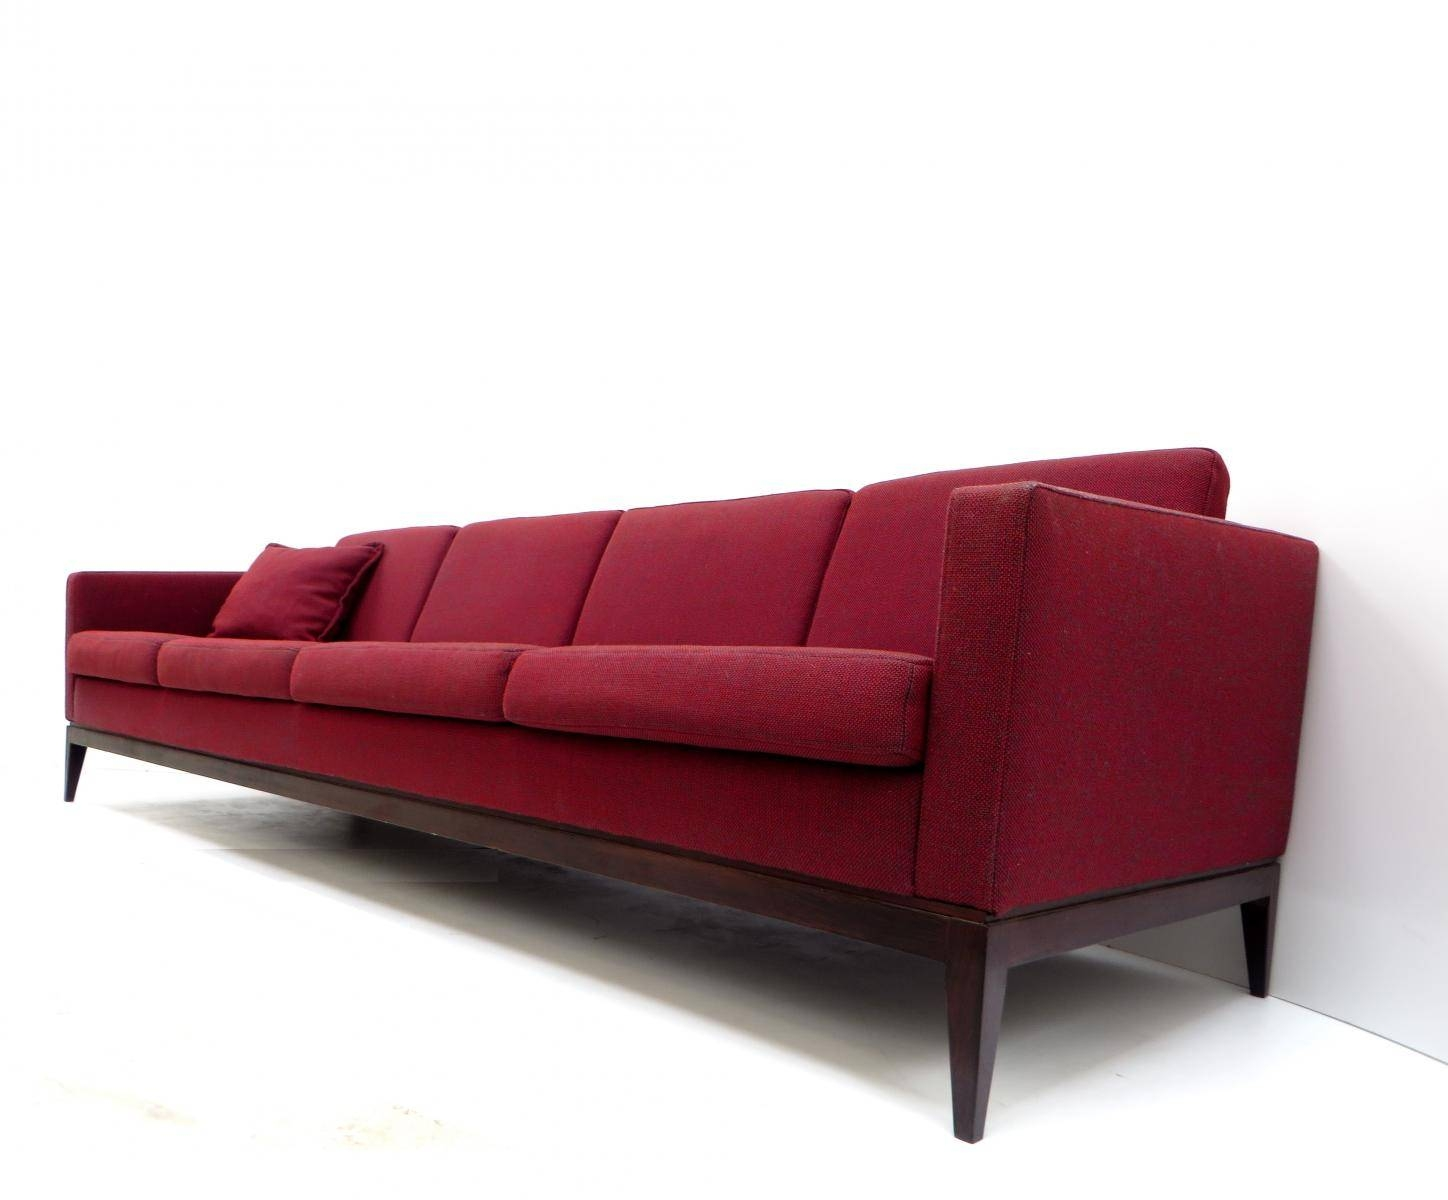 Large Vintage Burgundy Four-Seater Sofa For Sale At Pamono inside Four Seater Sofas (Image 17 of 30)